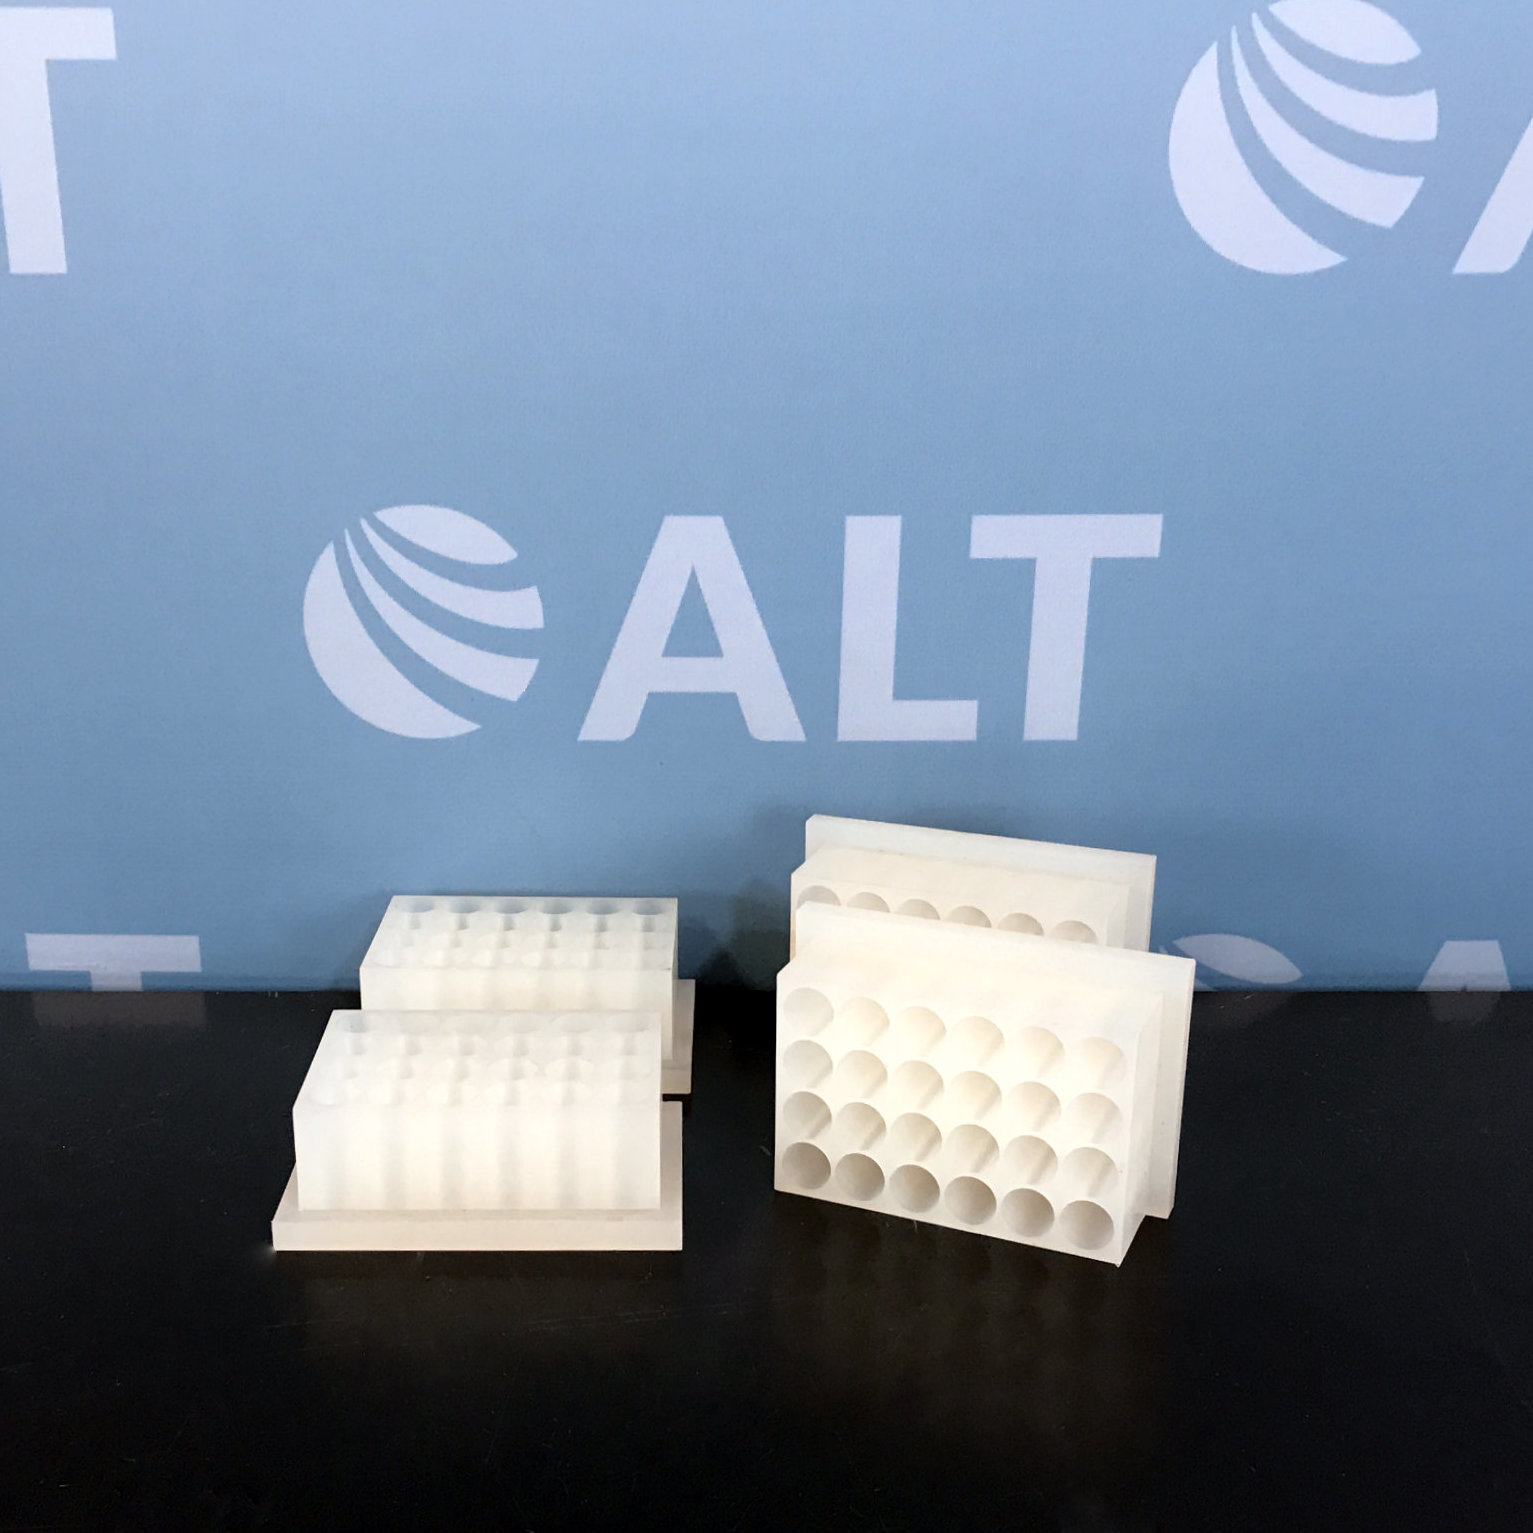 Thermo / Savant RBA24-16-100 Polypropylene Rotor Blocks Image